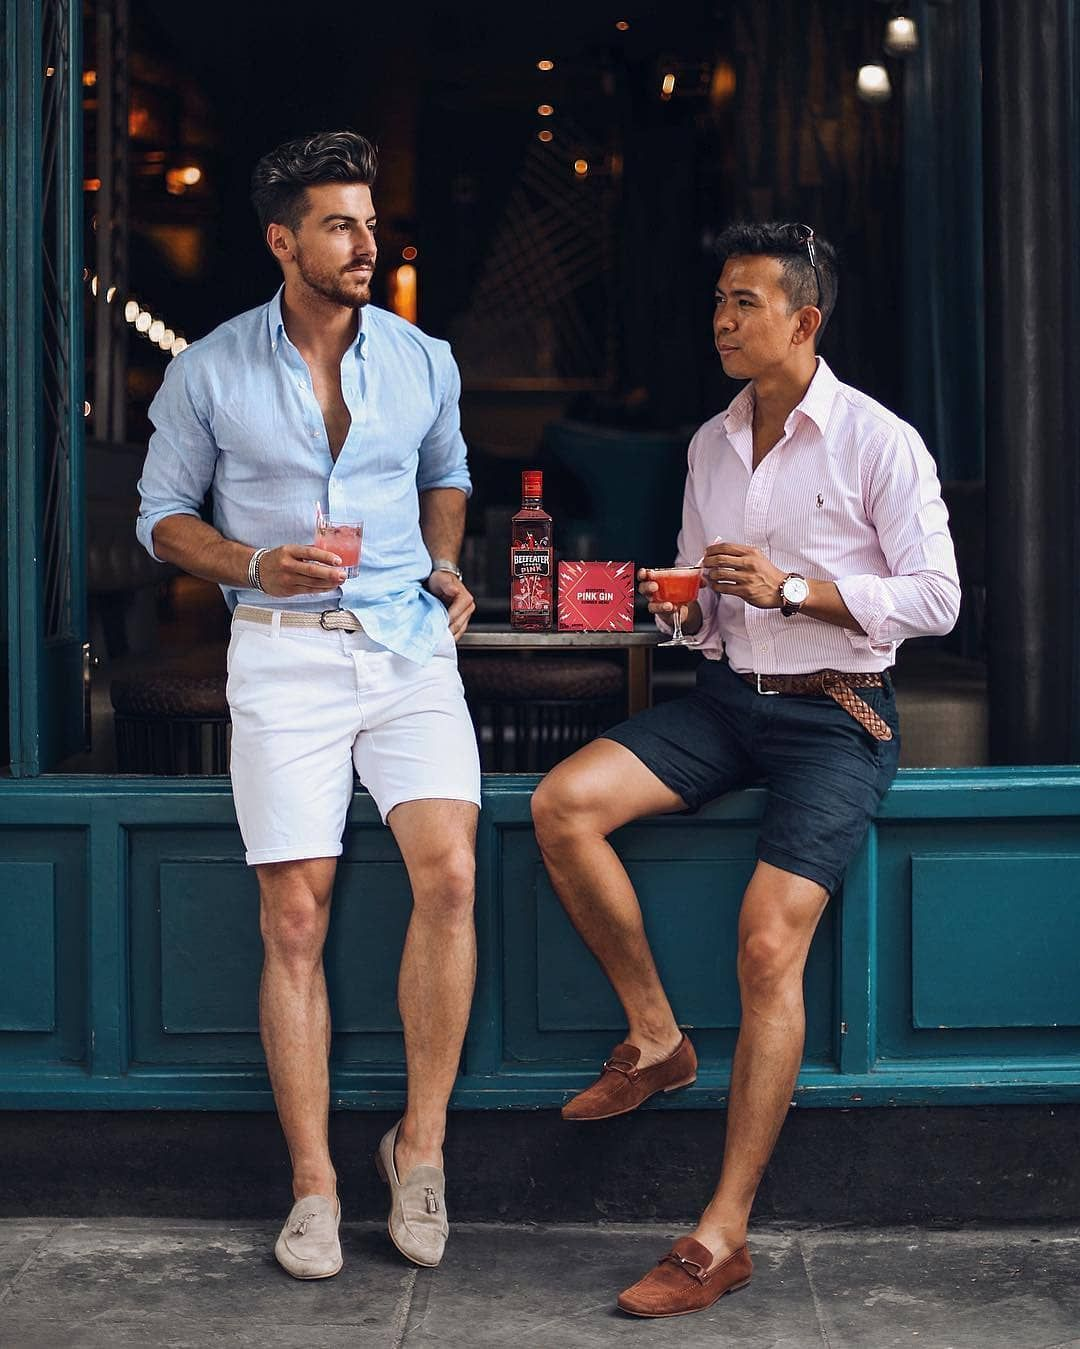 shorts sand suede tassel loafers blue